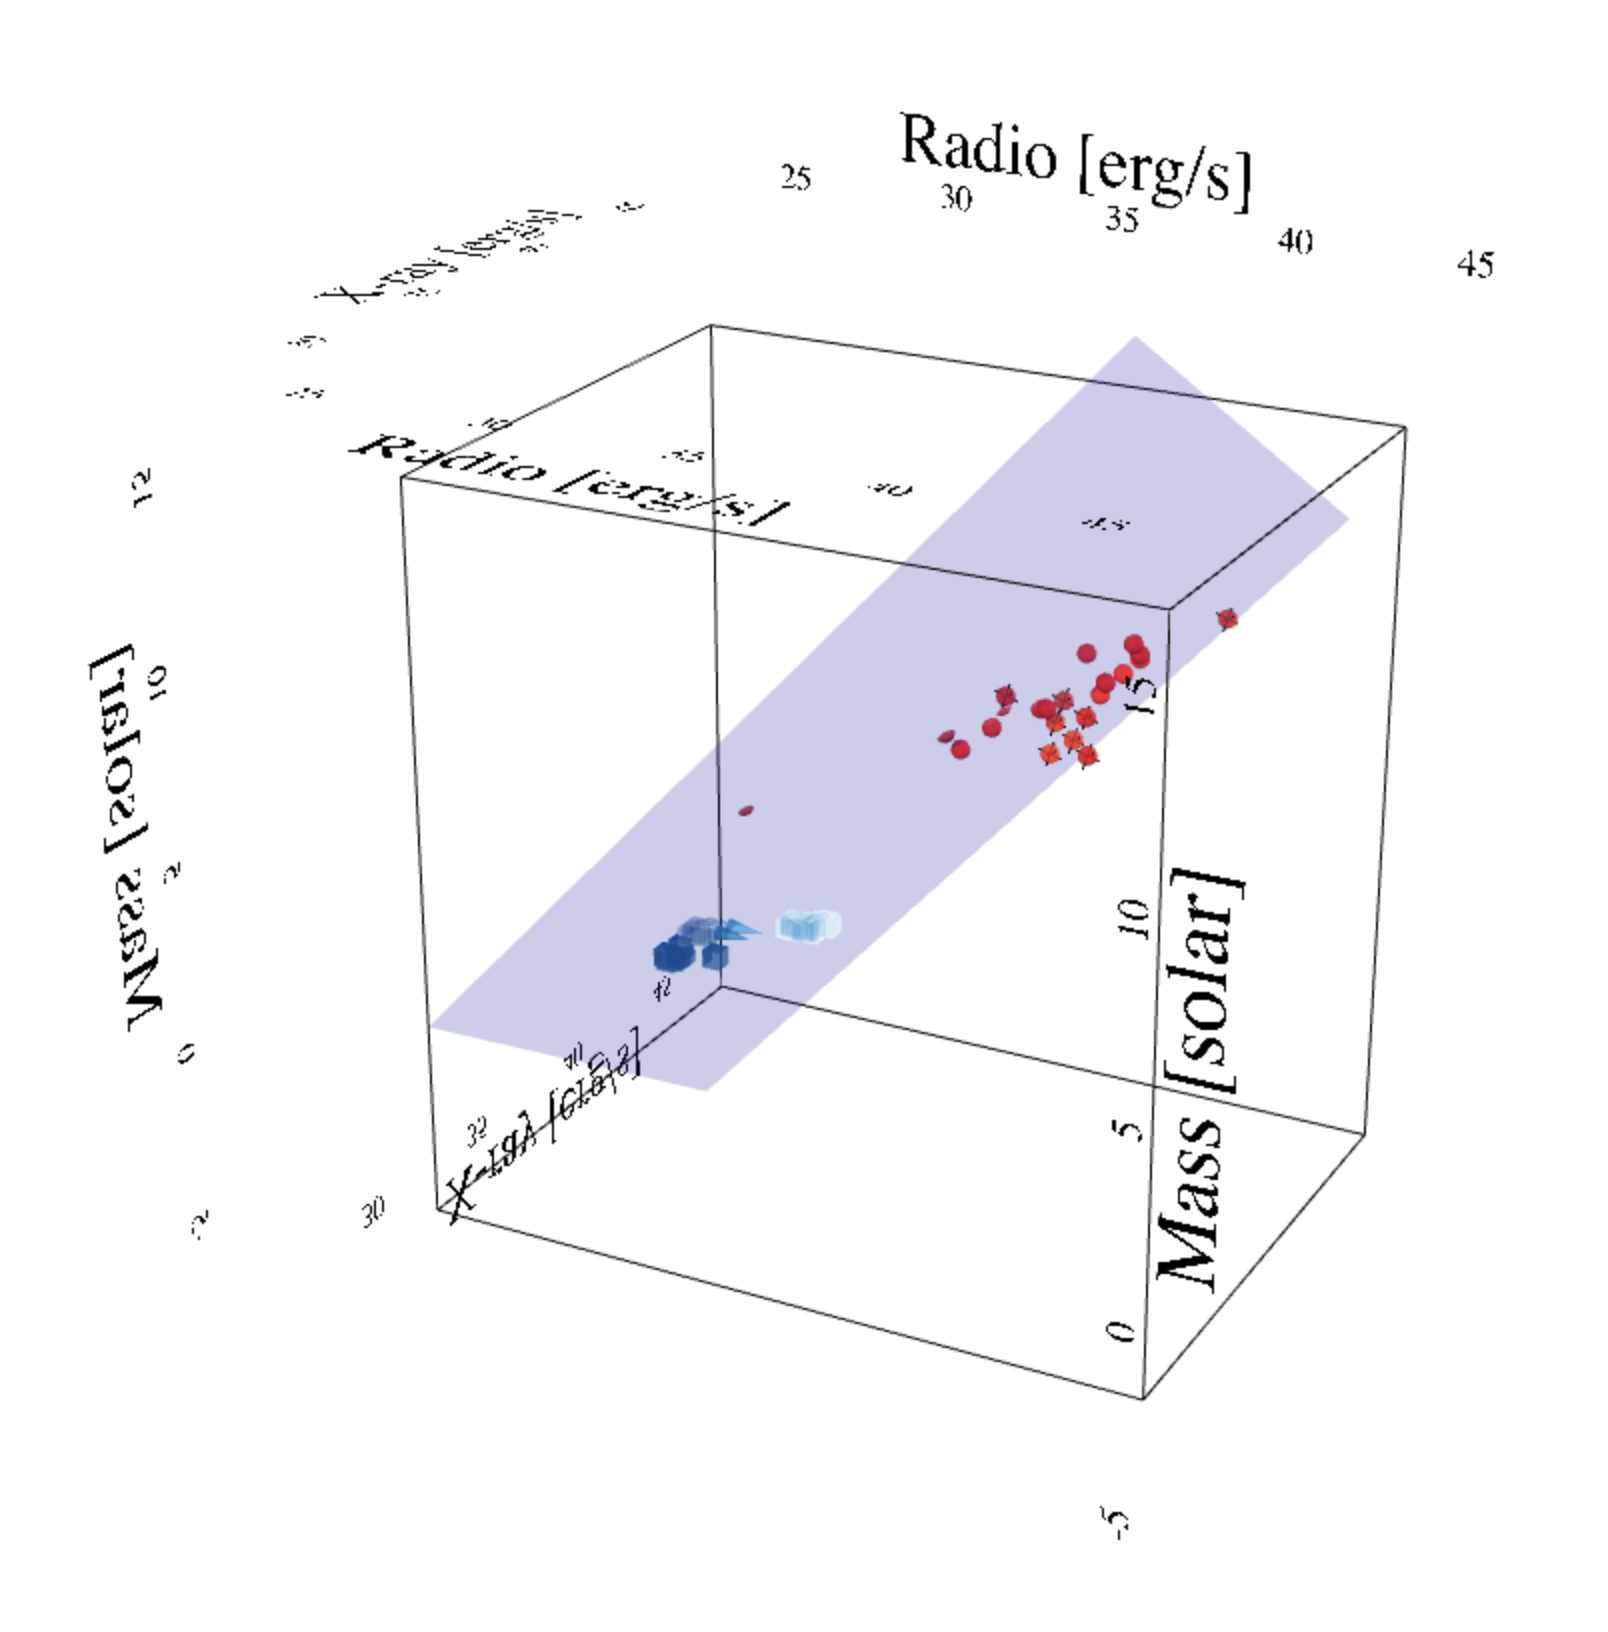 Three-dimensional view of fundamental plane of black hole accretion. A cube is labeled with the following orthogonal axes and limits. X-axis: Radio [erg/s] 30–45; Y-axis: X-ray [erg/s] 30–45; Z-axis: Mass [solar] 0–15. A light blue plane cuts through data points which are clustered as red spheres at the high-mass end and blue cubes and cones at the low mass end.